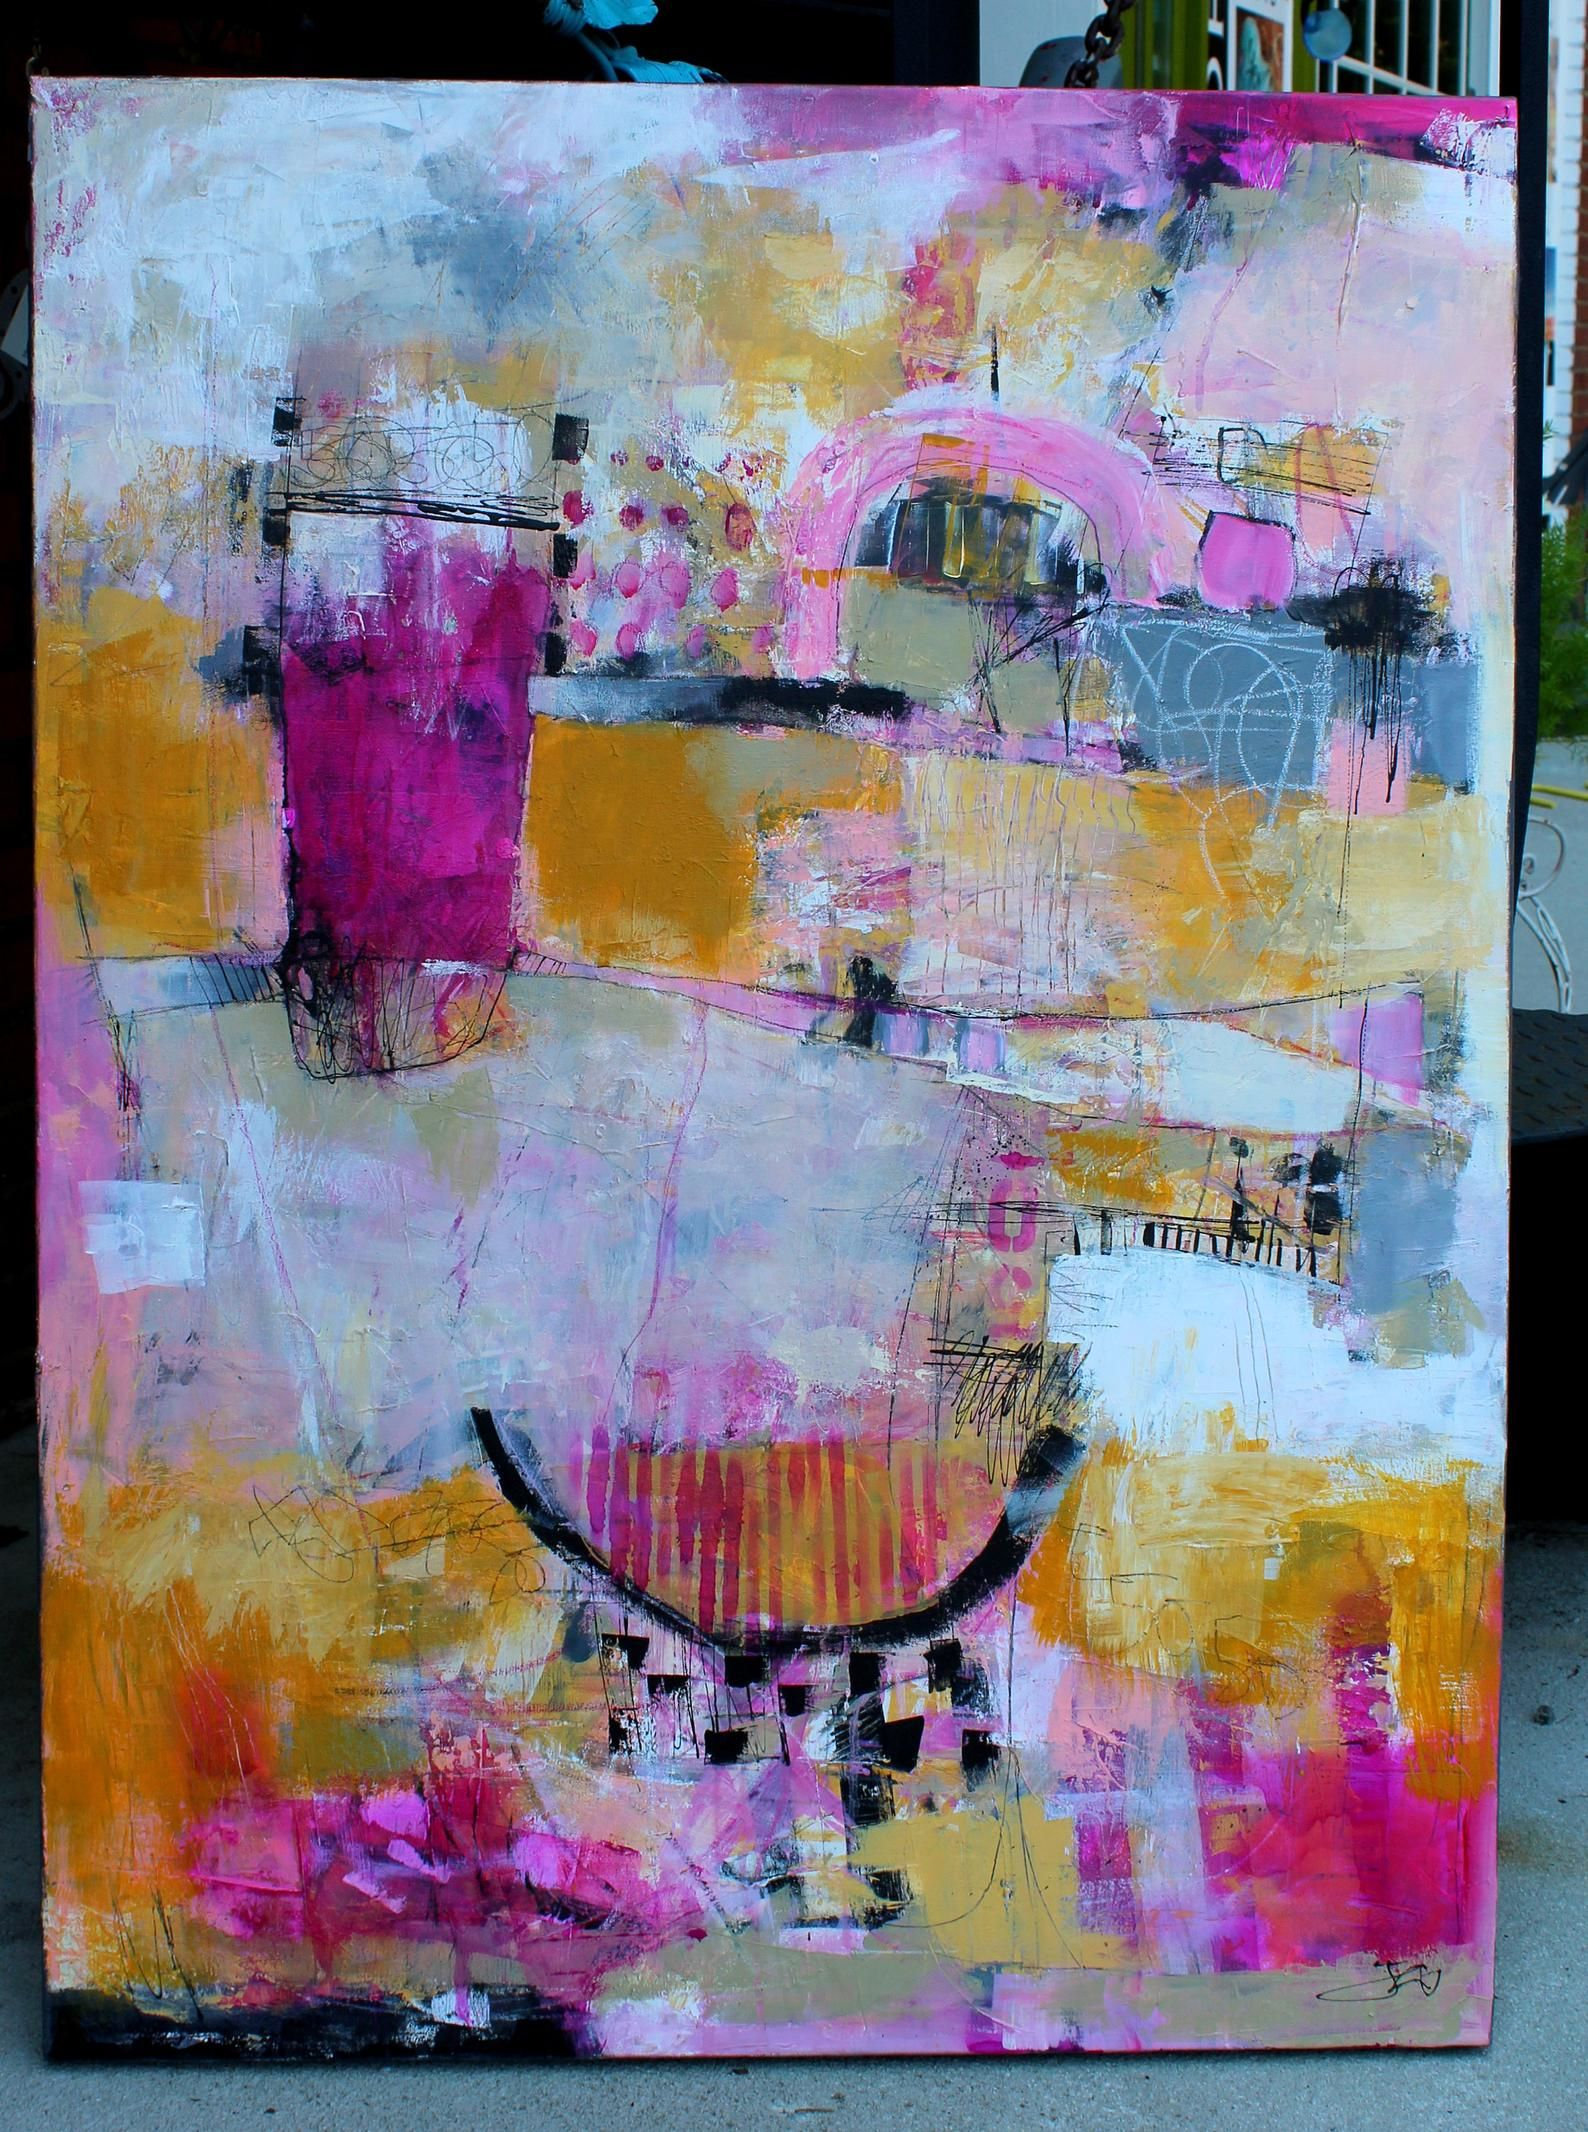 Untitled No. 30 | Original Colorful Abstract Painting | Expressionism | 24x30 inches Stretched